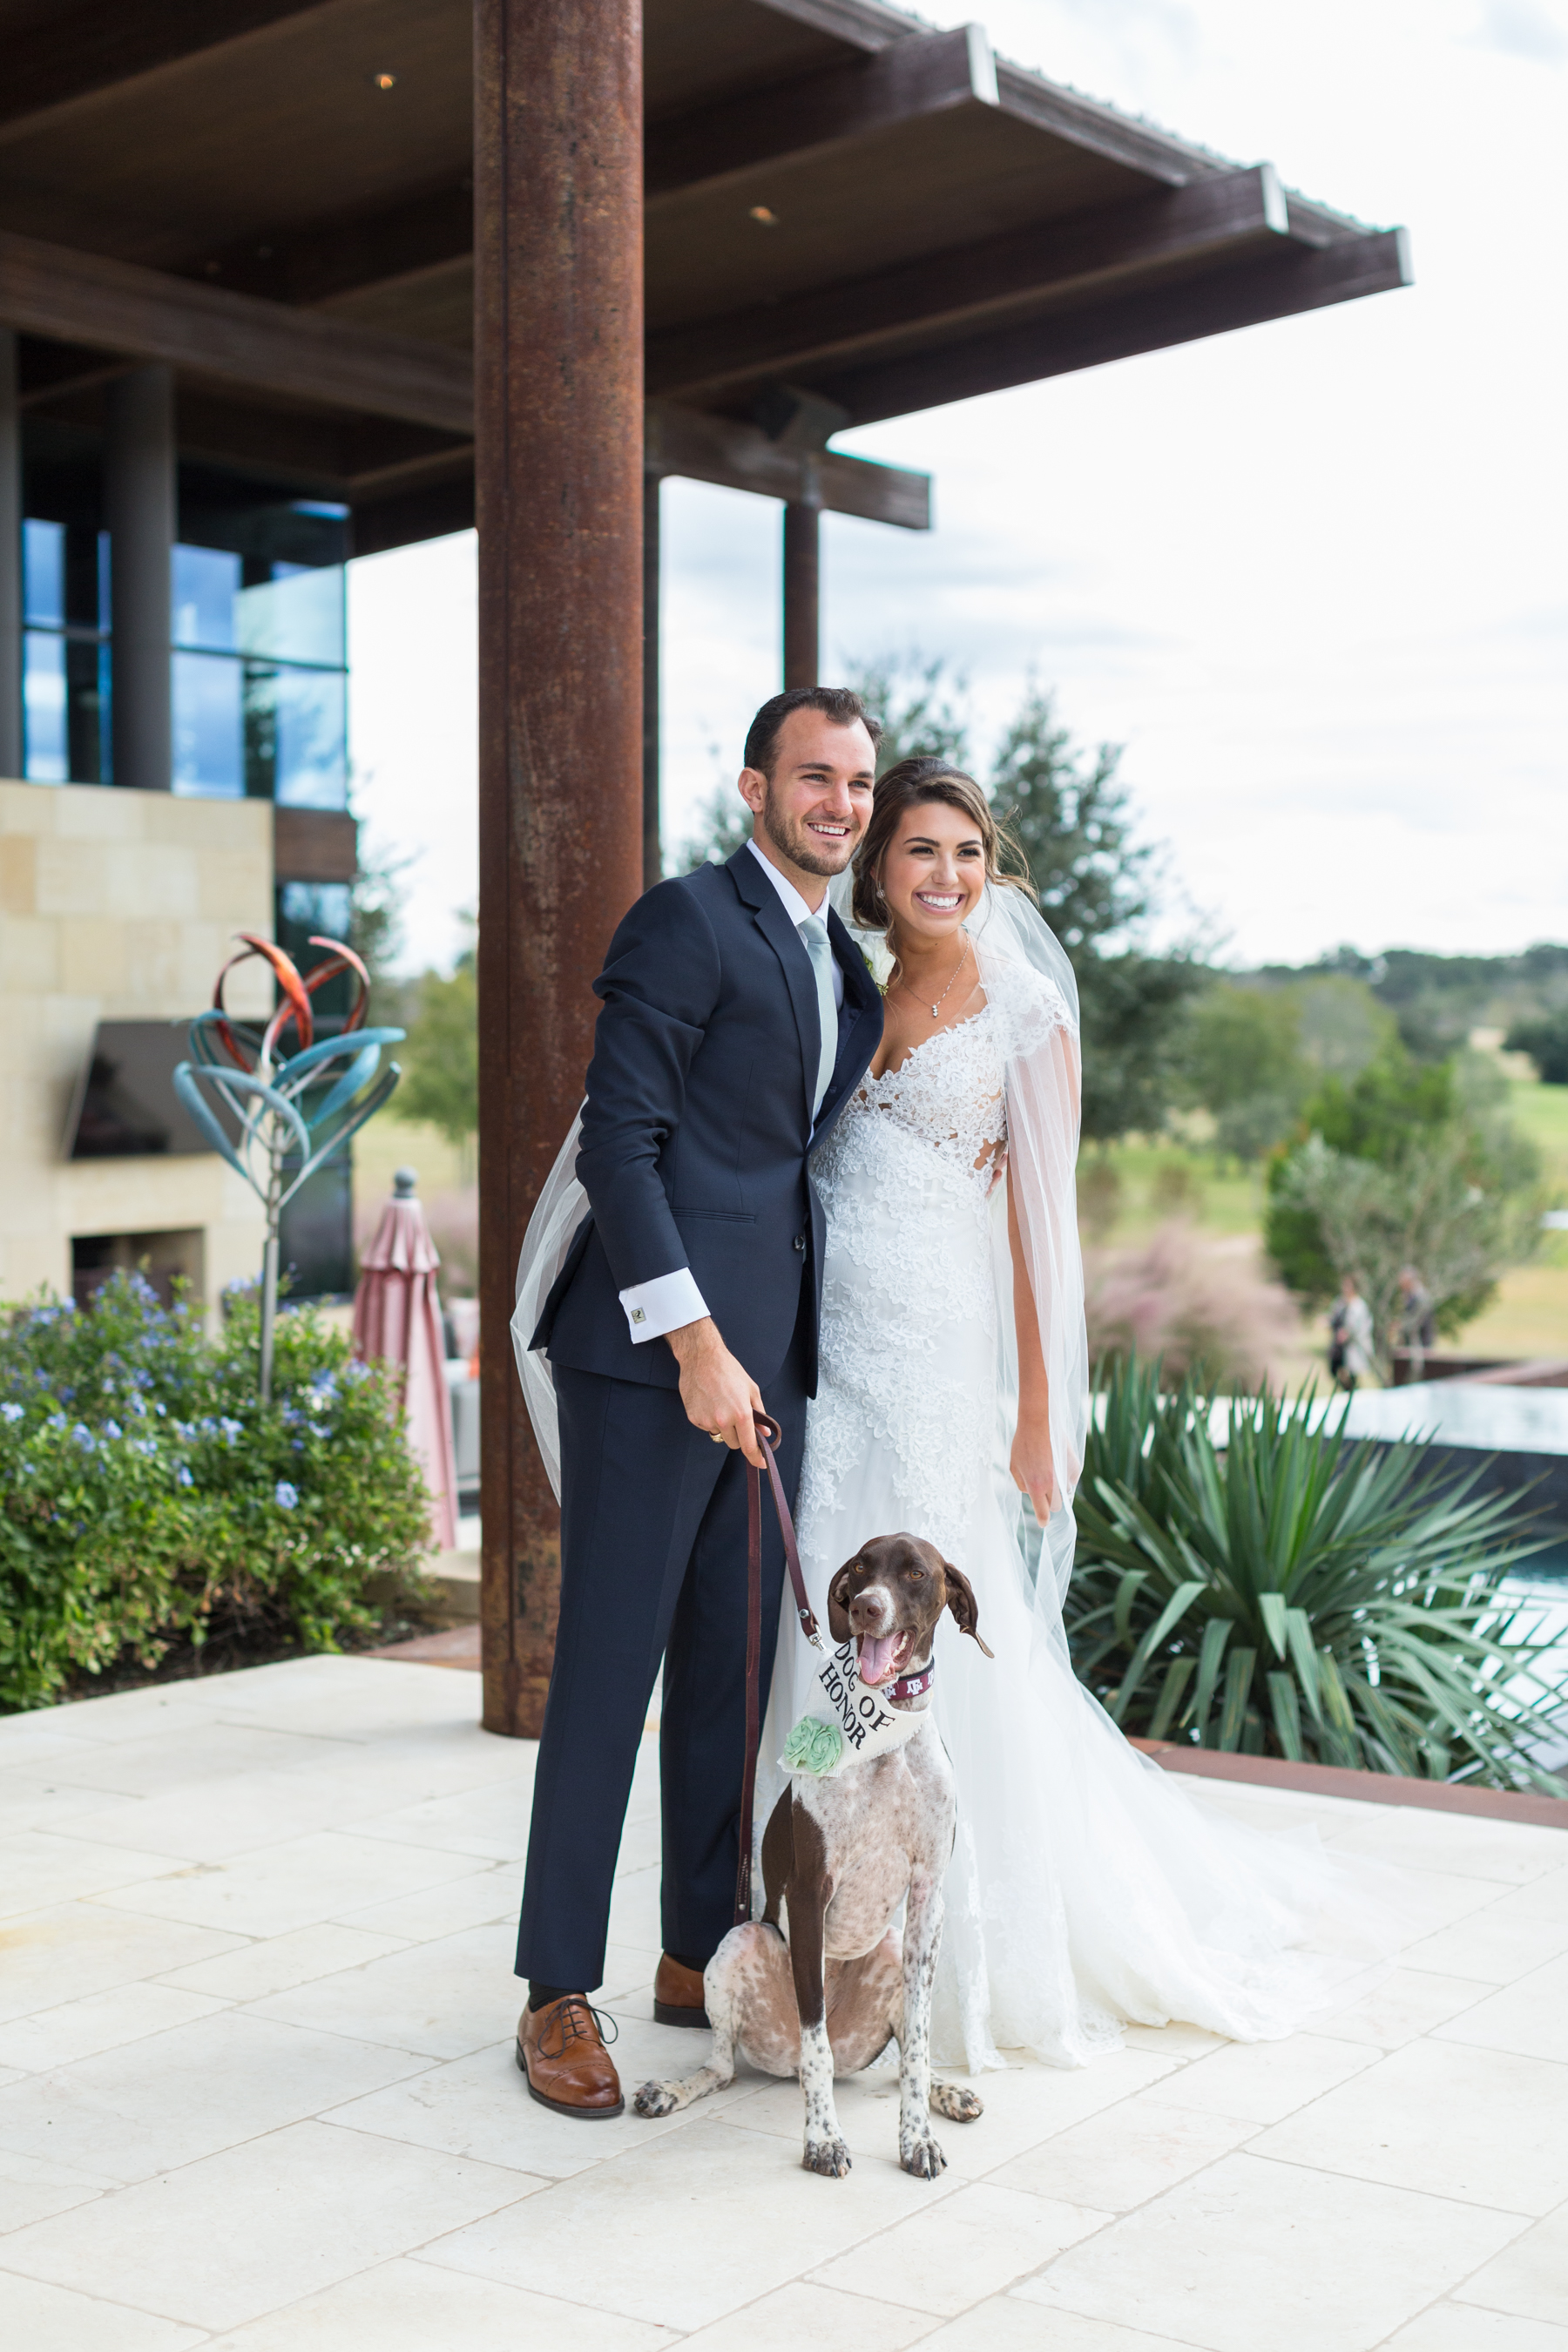 bride and groom with their dog in wedding day in Texas